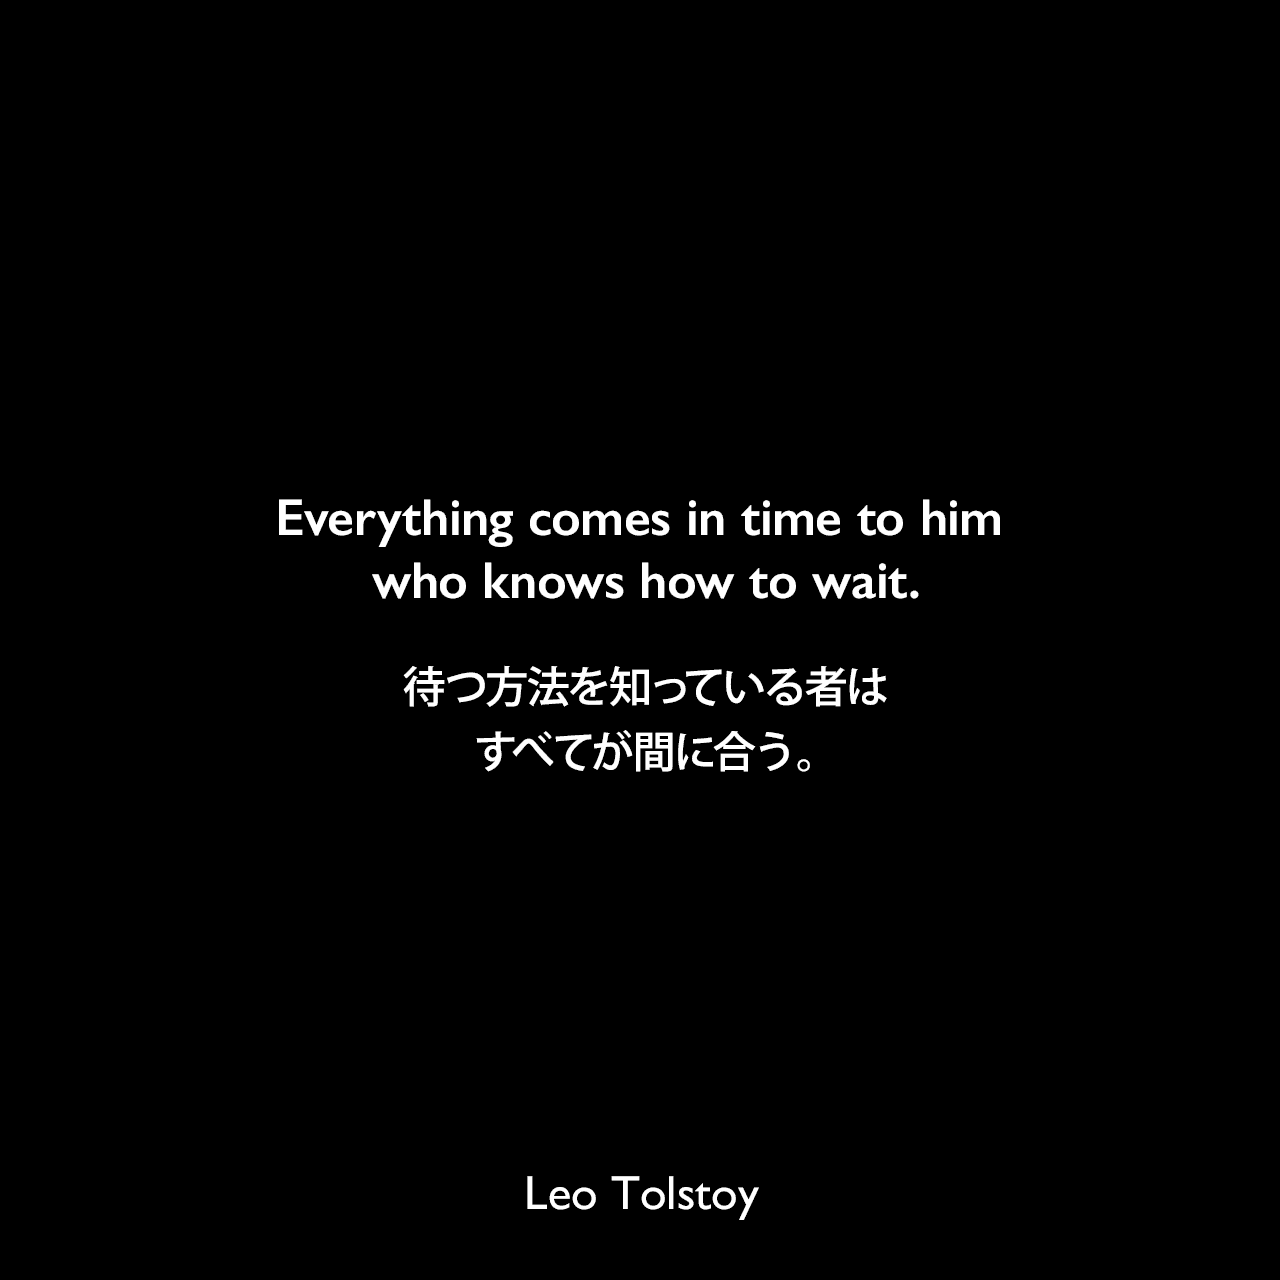 Everything comes in time to him who knows how to wait.待つ方法を知っている者は、すべてが間に合う。- トルストイによる小説「戦争と平和」よりLeo Tolstoy